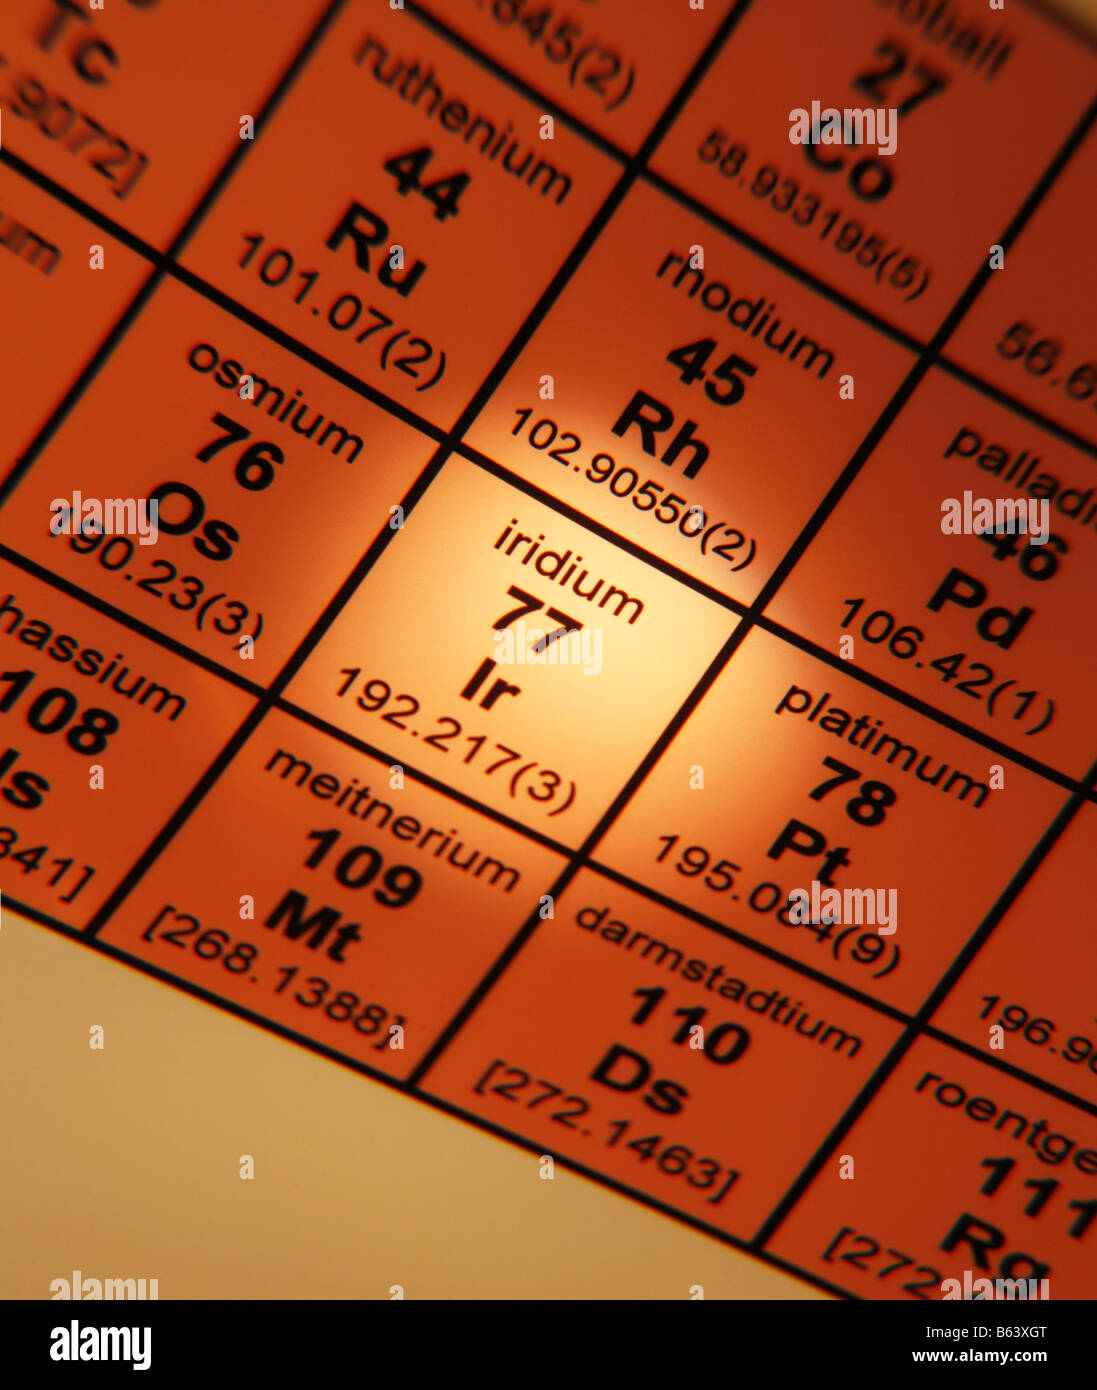 Rh on periodic table image collections periodic table images iridium on the periodic table images periodic table images iridium on the periodic table choice image gamestrikefo Images